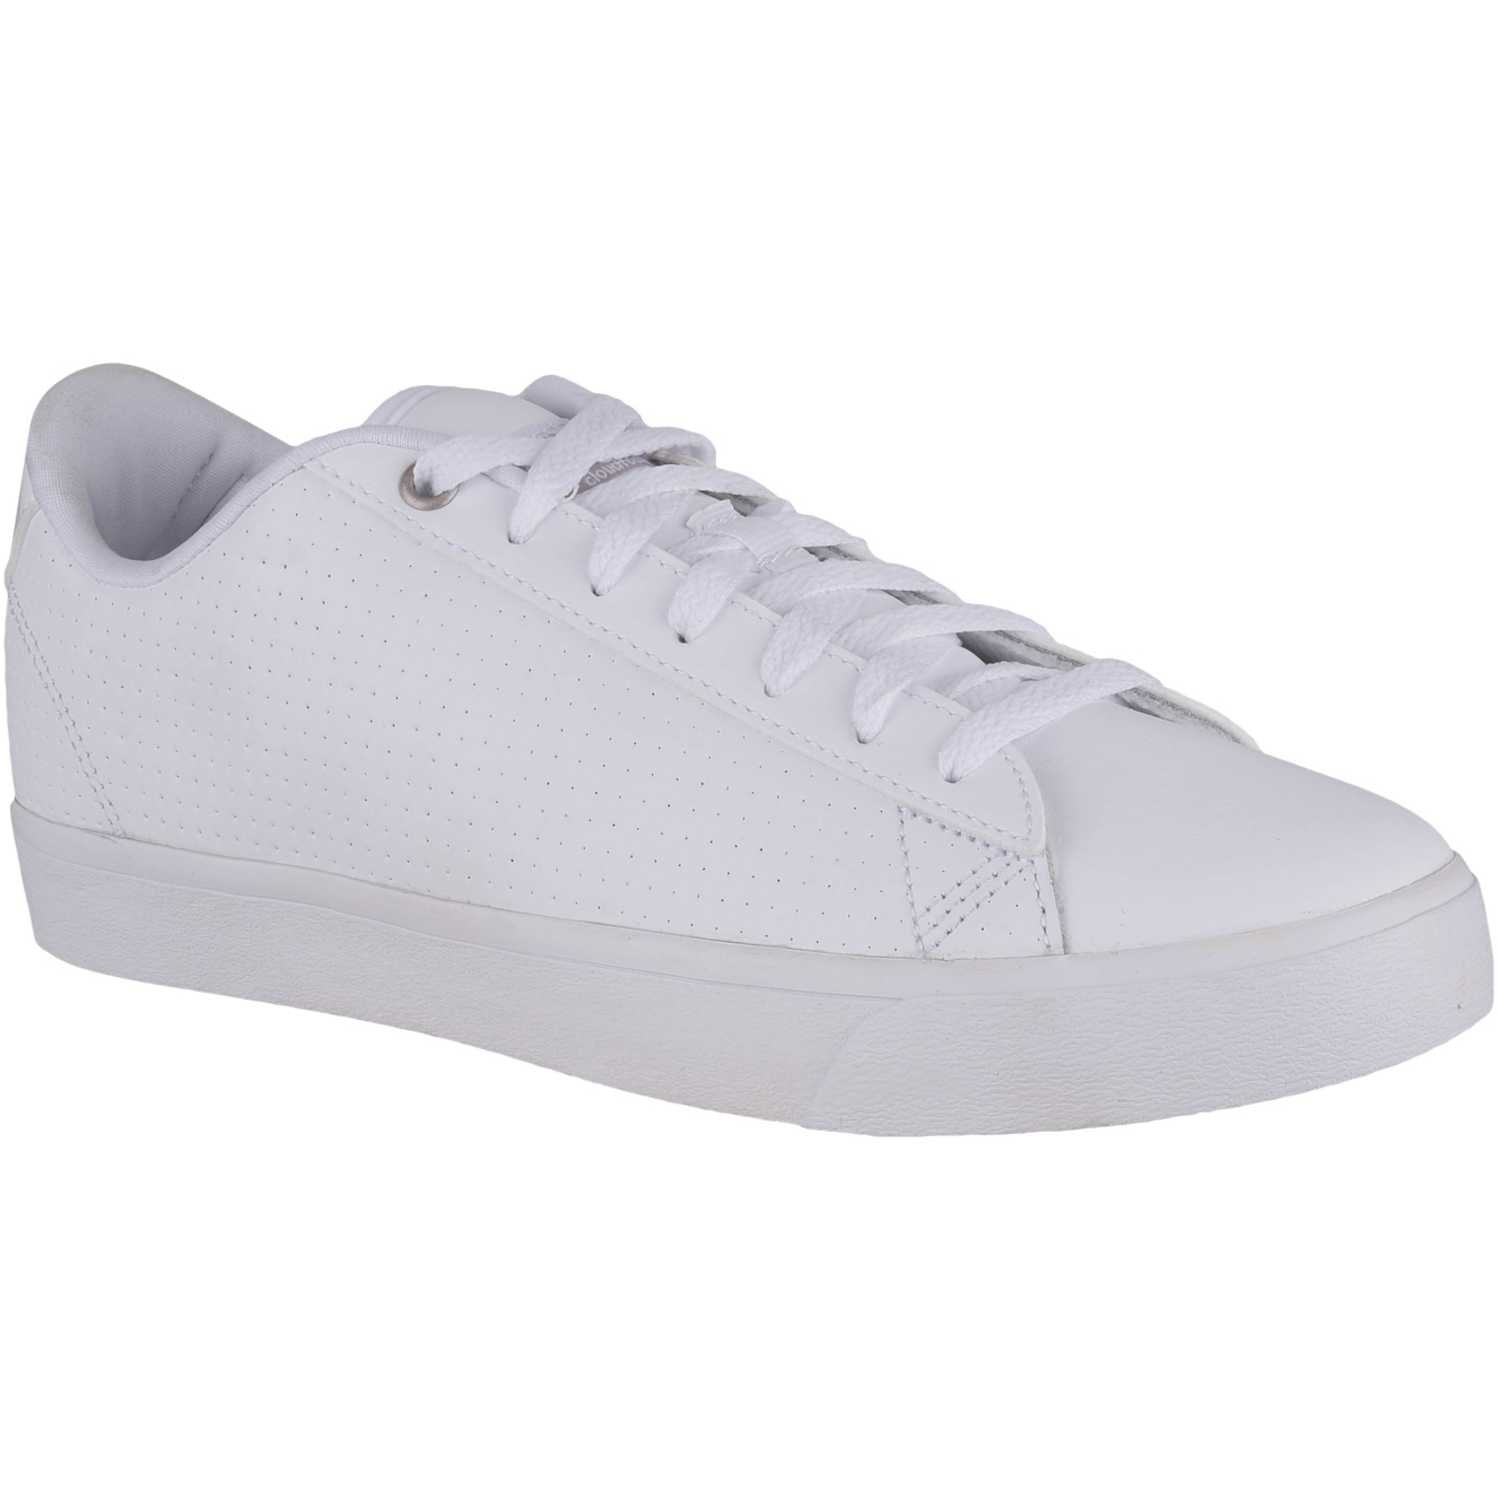 buy popular 8fc8f 89bdc ... low price zapatilla de mujer adidas neo blanco gris daily qt clean  df9d6 6687a